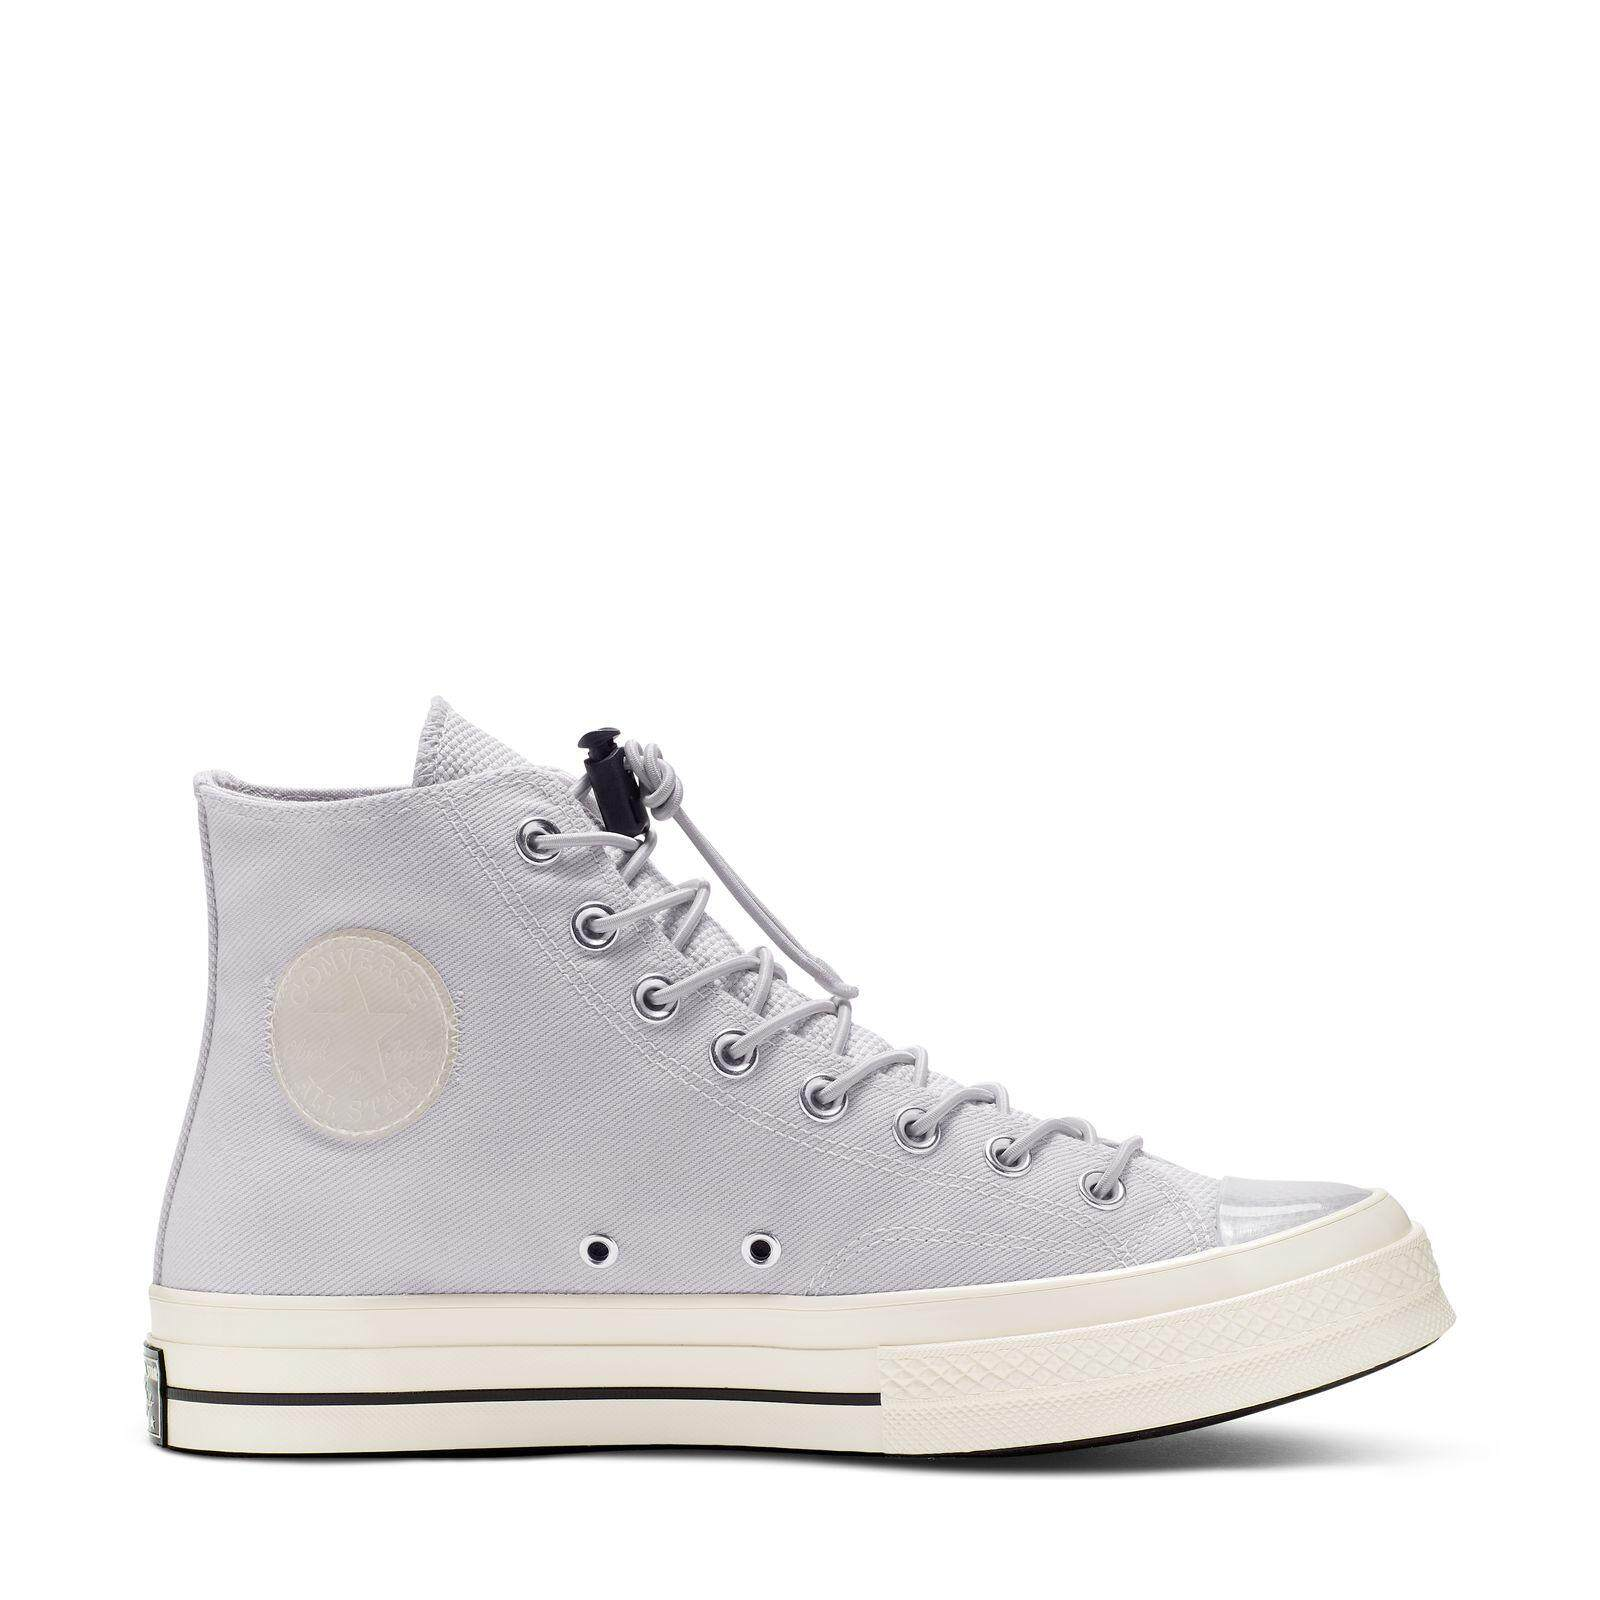 Recuperar Elasticidad Paine Gillic  Comparison of [11.11 Mega Offer] CONVERSE CHUCK 70 DOWNLINK - HI - PALE  PUTTY/BLACK/EGRET - 165086C and CONVERSE ONE STAR PRO WASHED SUEDE - OX -  BARKROOT BROWN/ ALE BROWN/ BROWN -